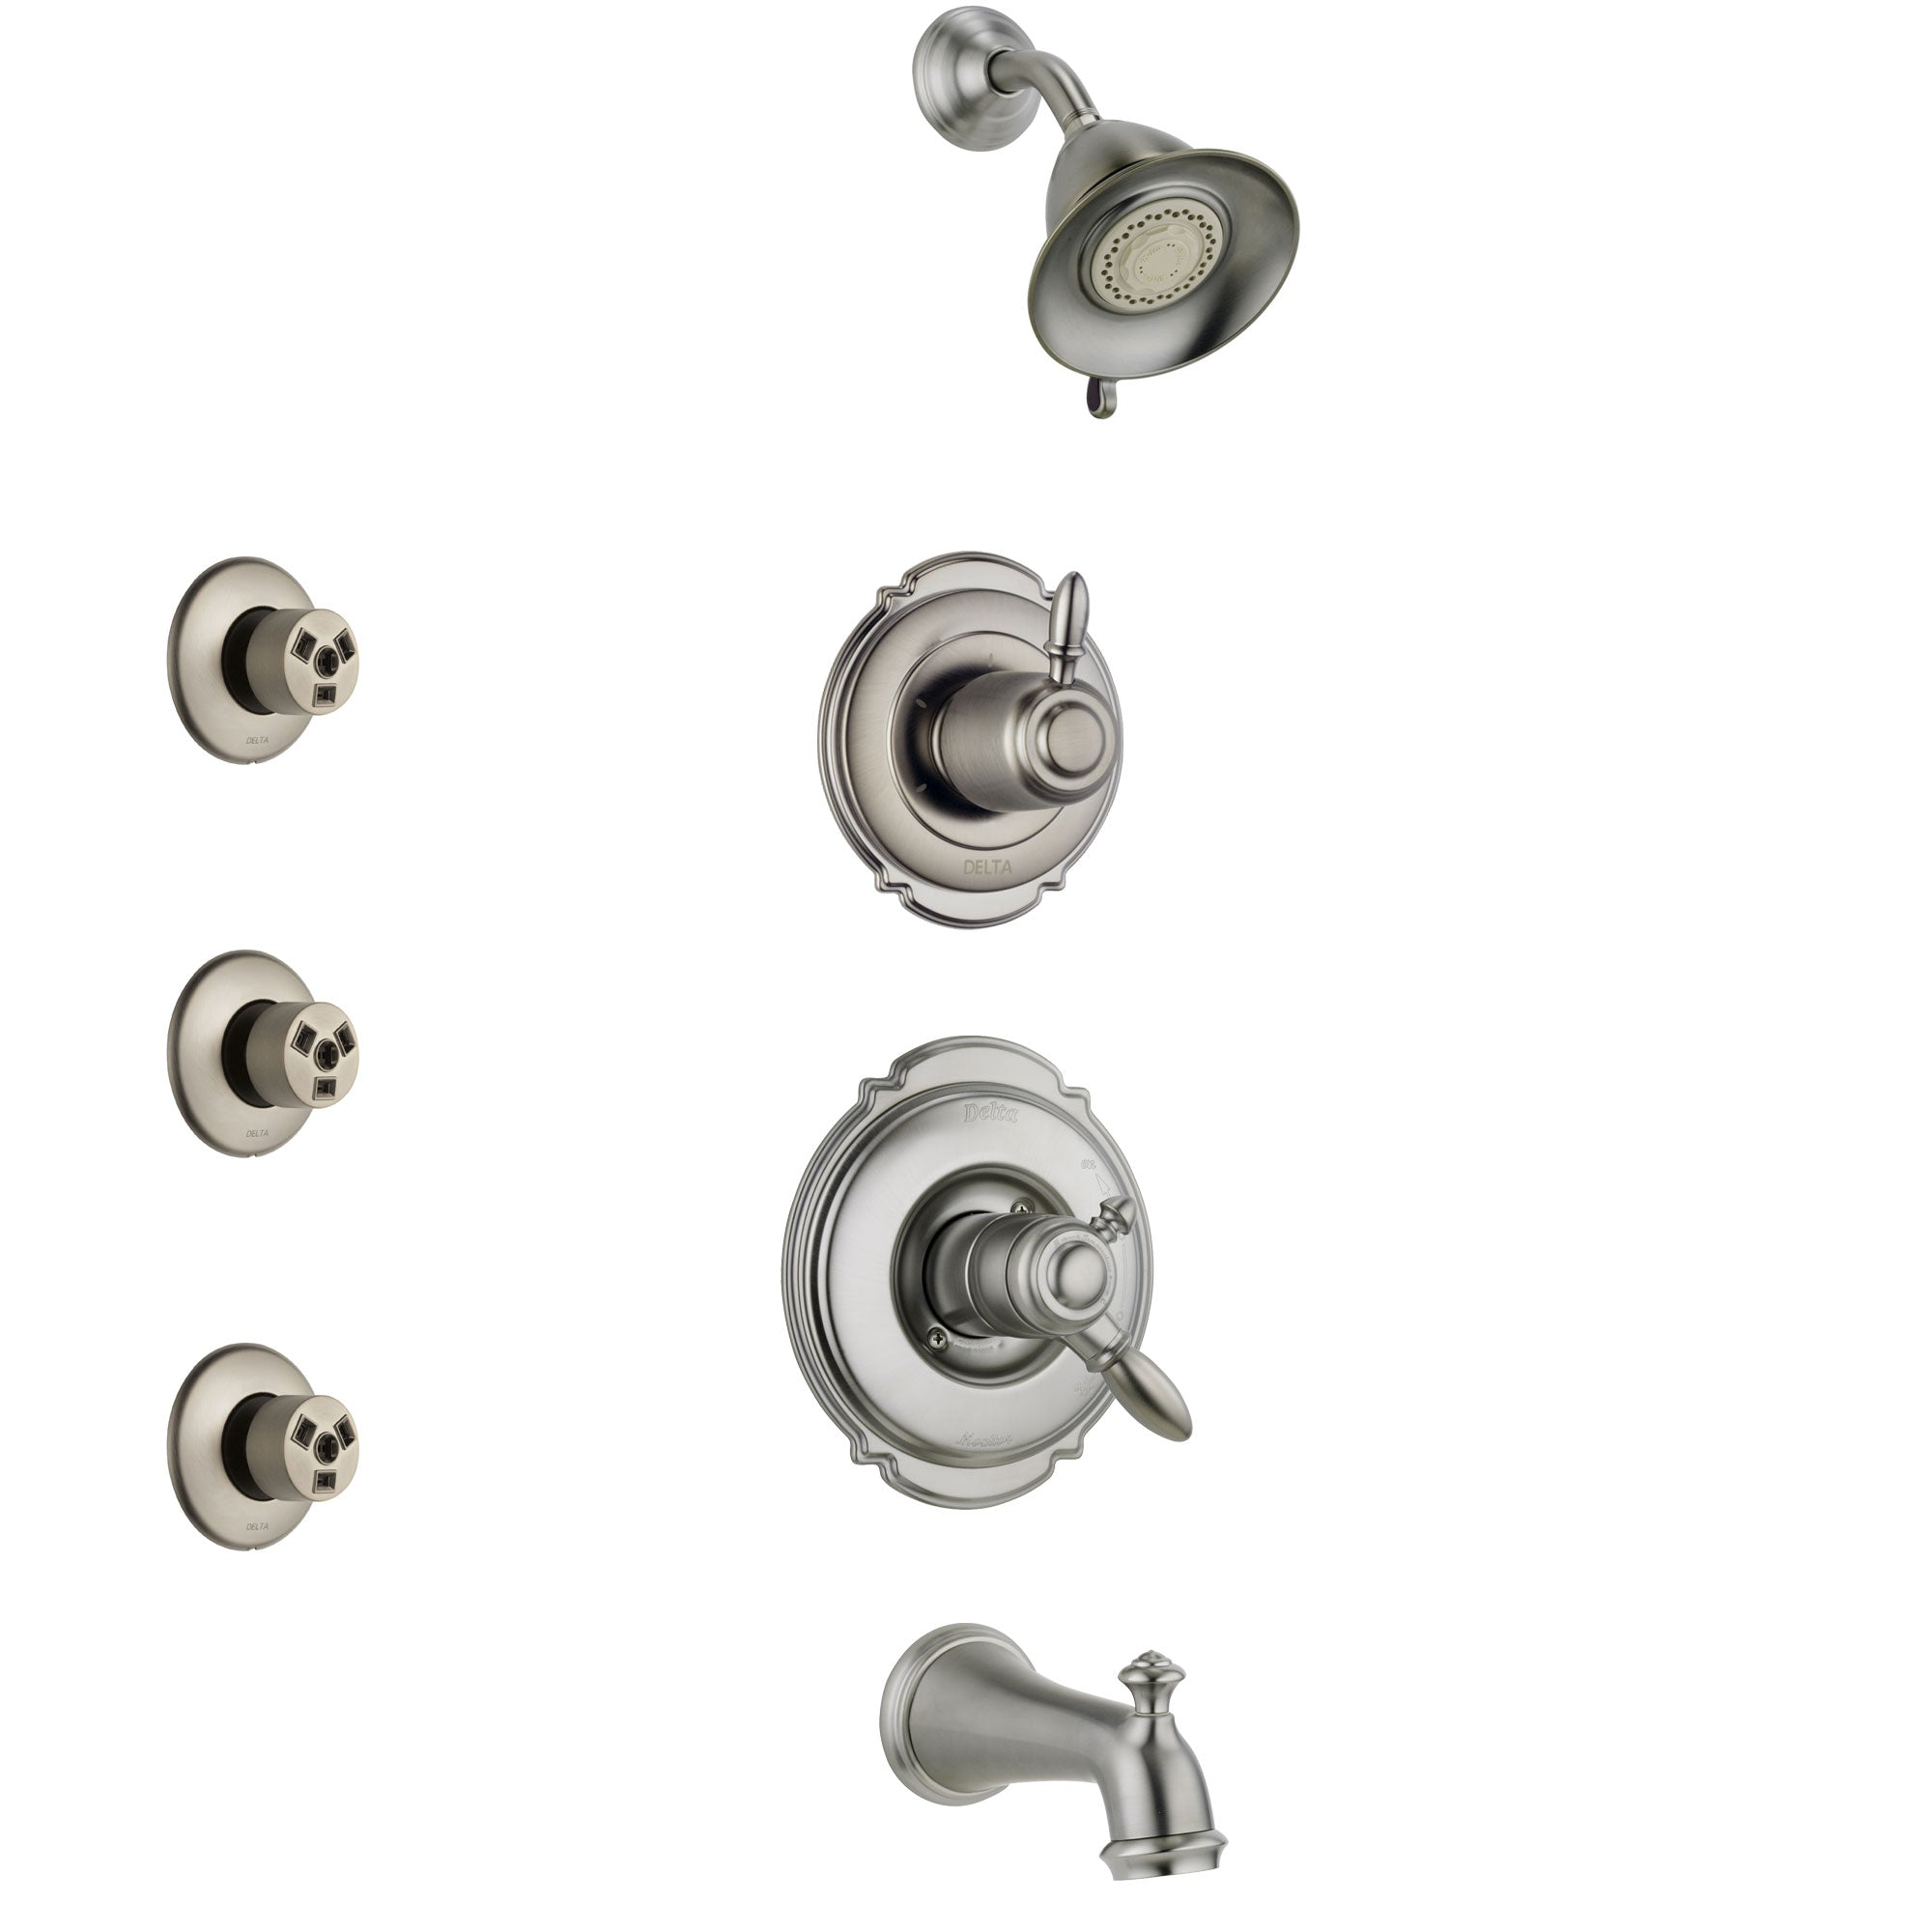 Delta Victorian Stainless Steel Finish Tub and Shower System with Dual Control Handle, 3-Setting Diverter, Showerhead, and 3 Body Sprays SS17455SS1